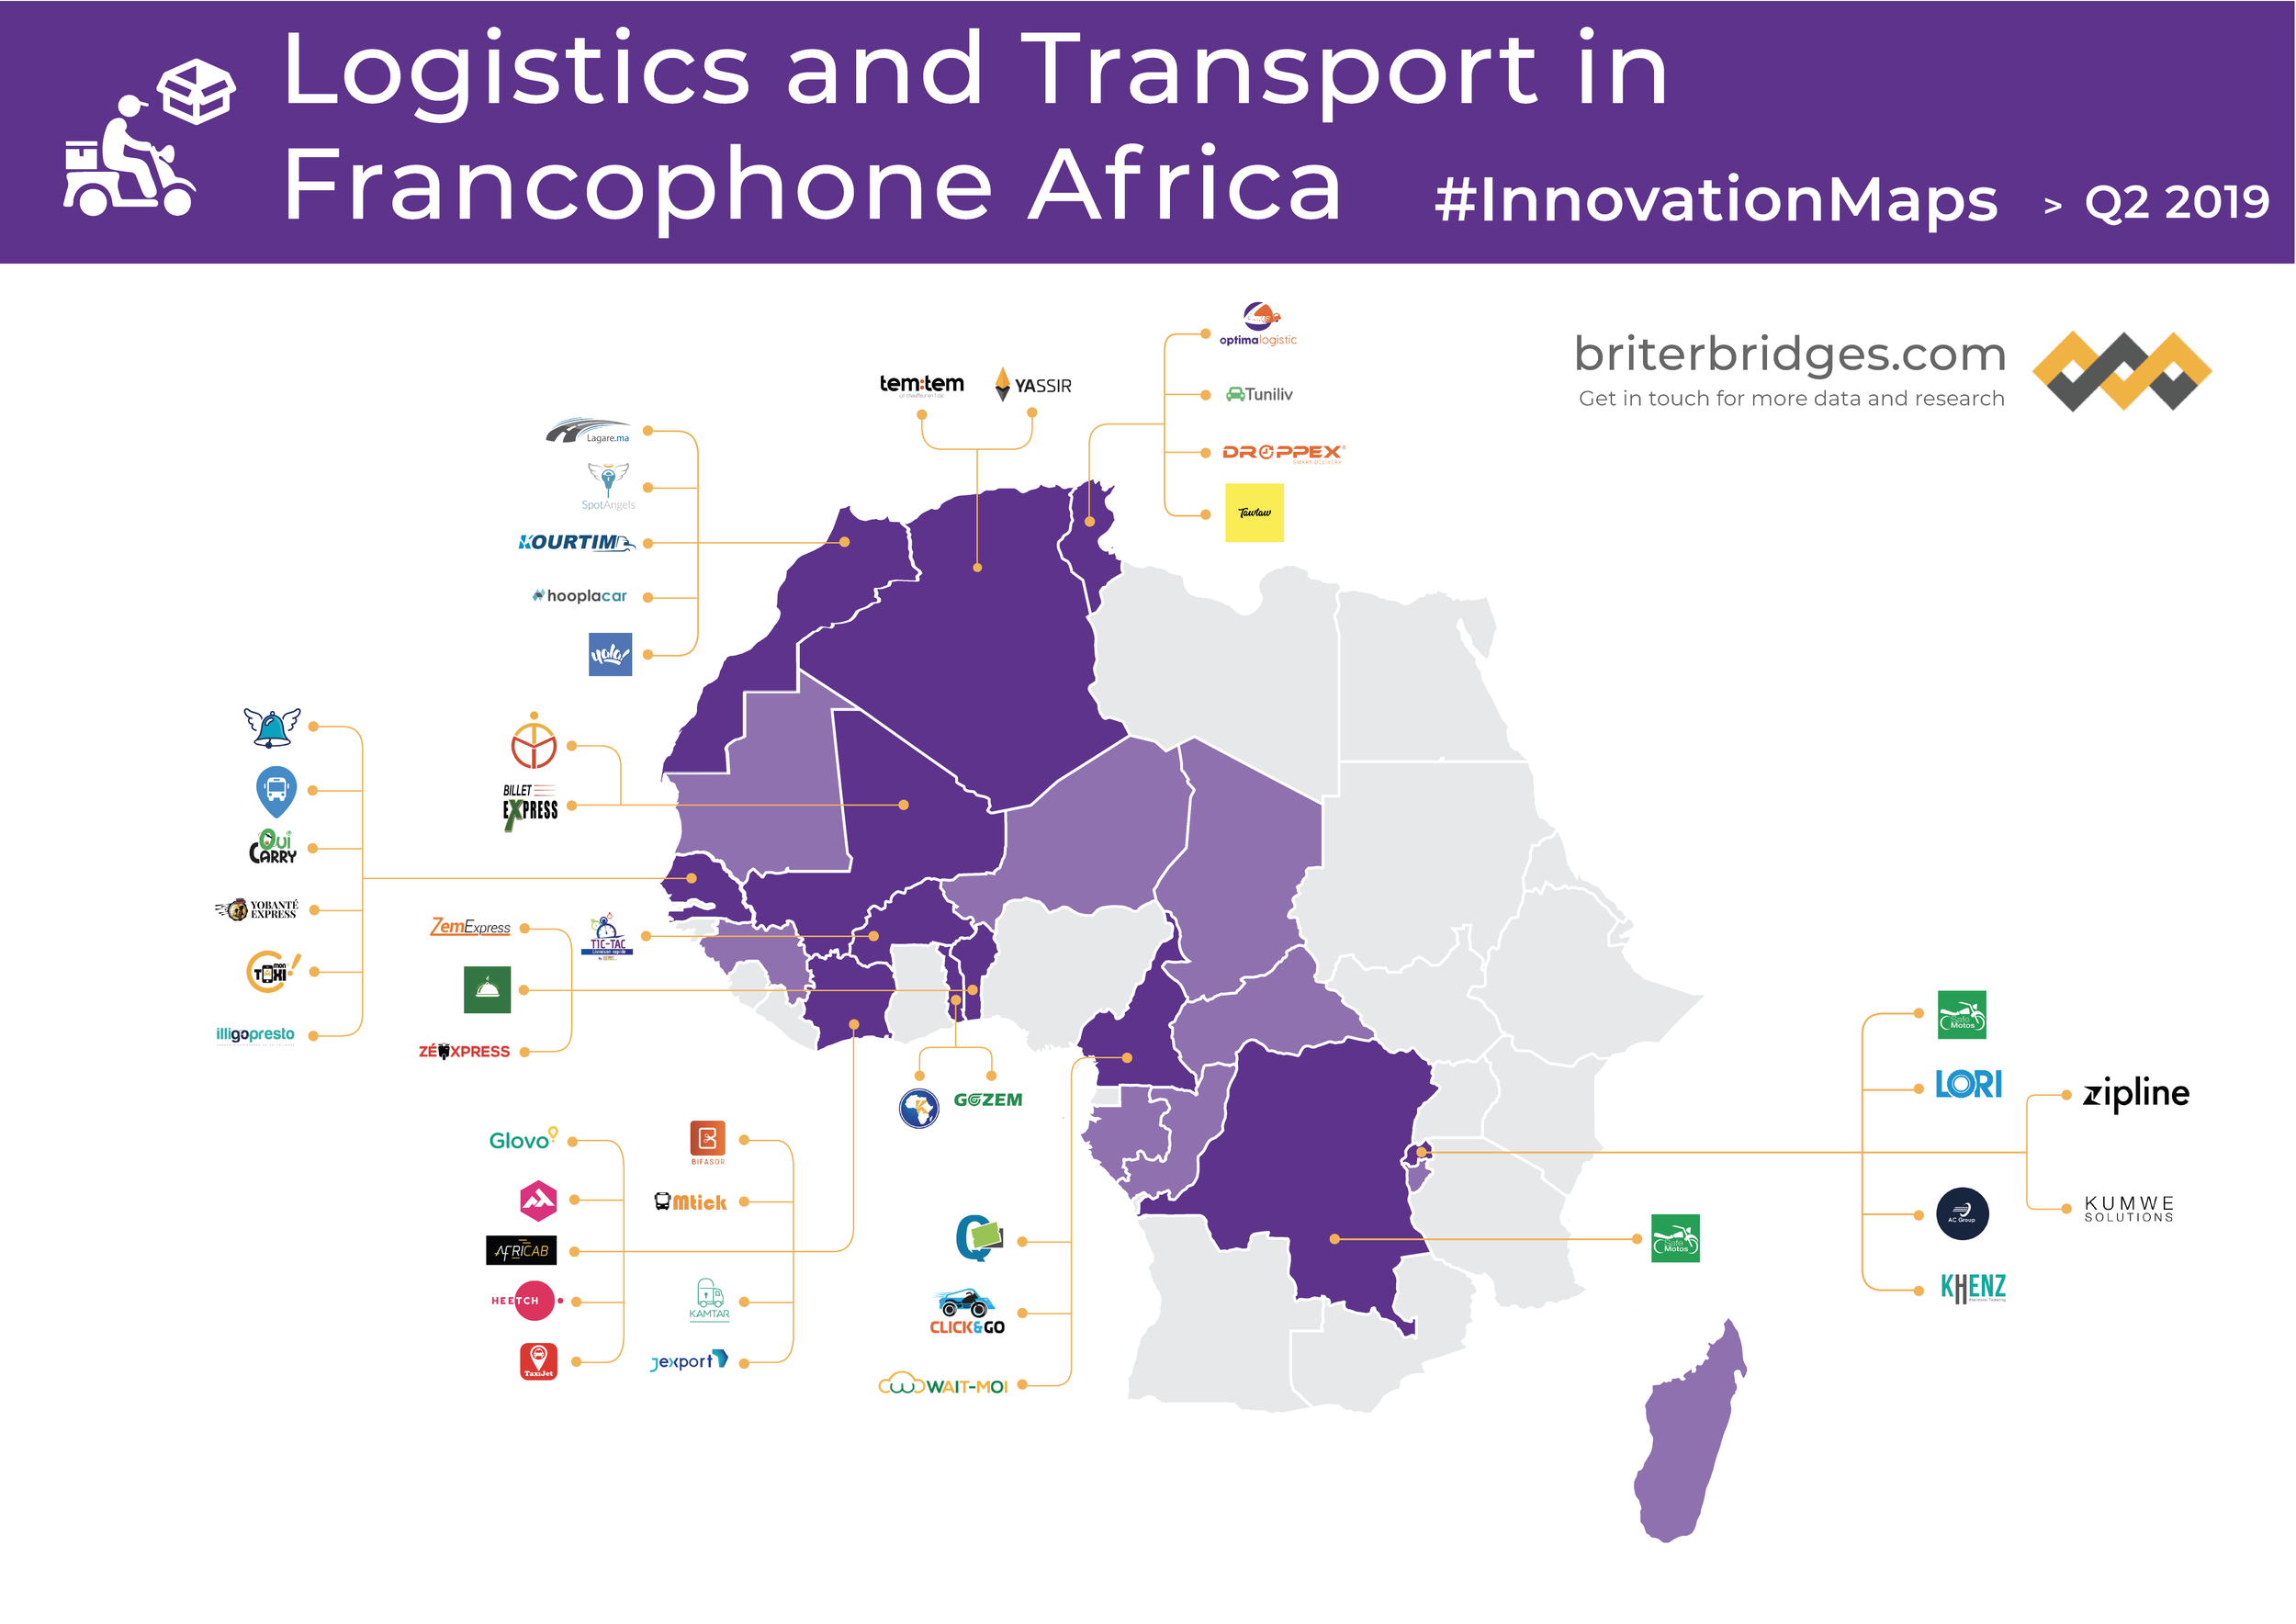 Logistics and eTransport in Francophone Africa